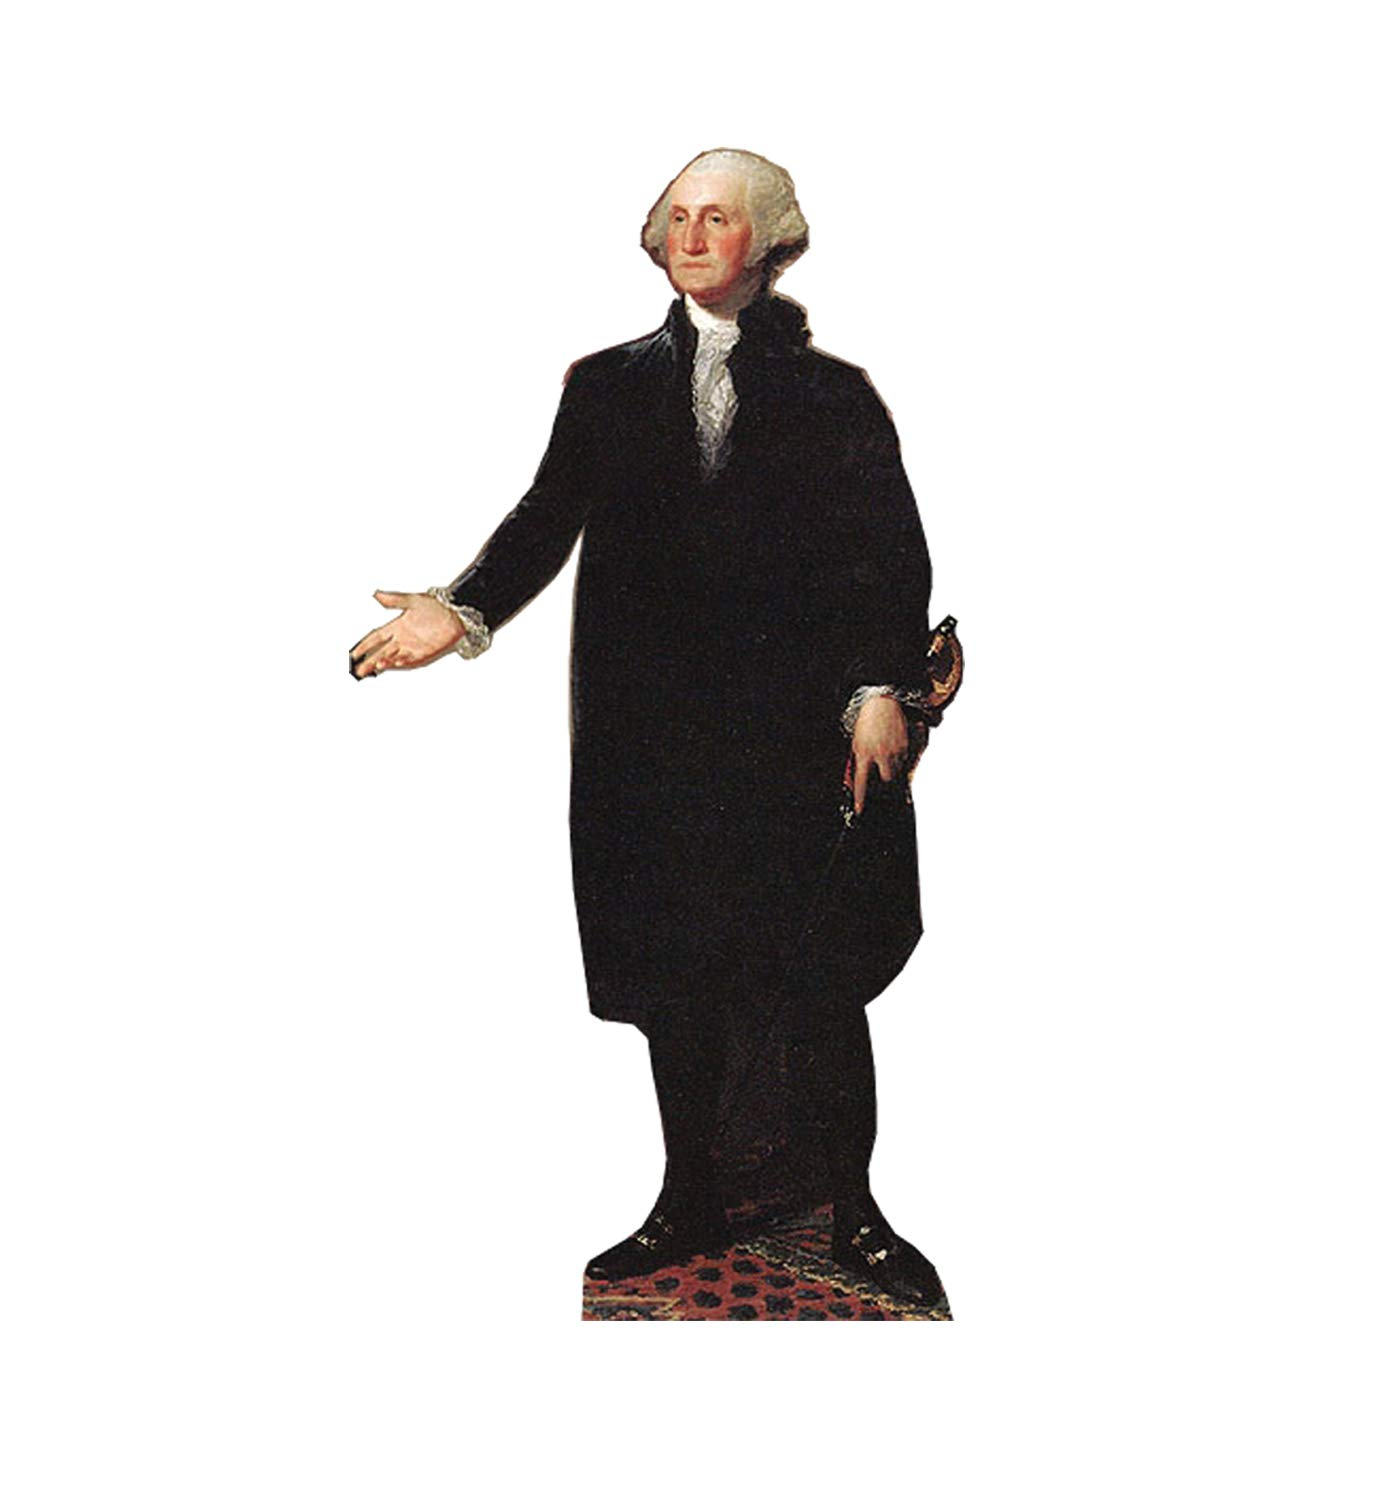 Advanced Graphics President George Washington Life Size Cardboard Cutout Standup by Cardboard People